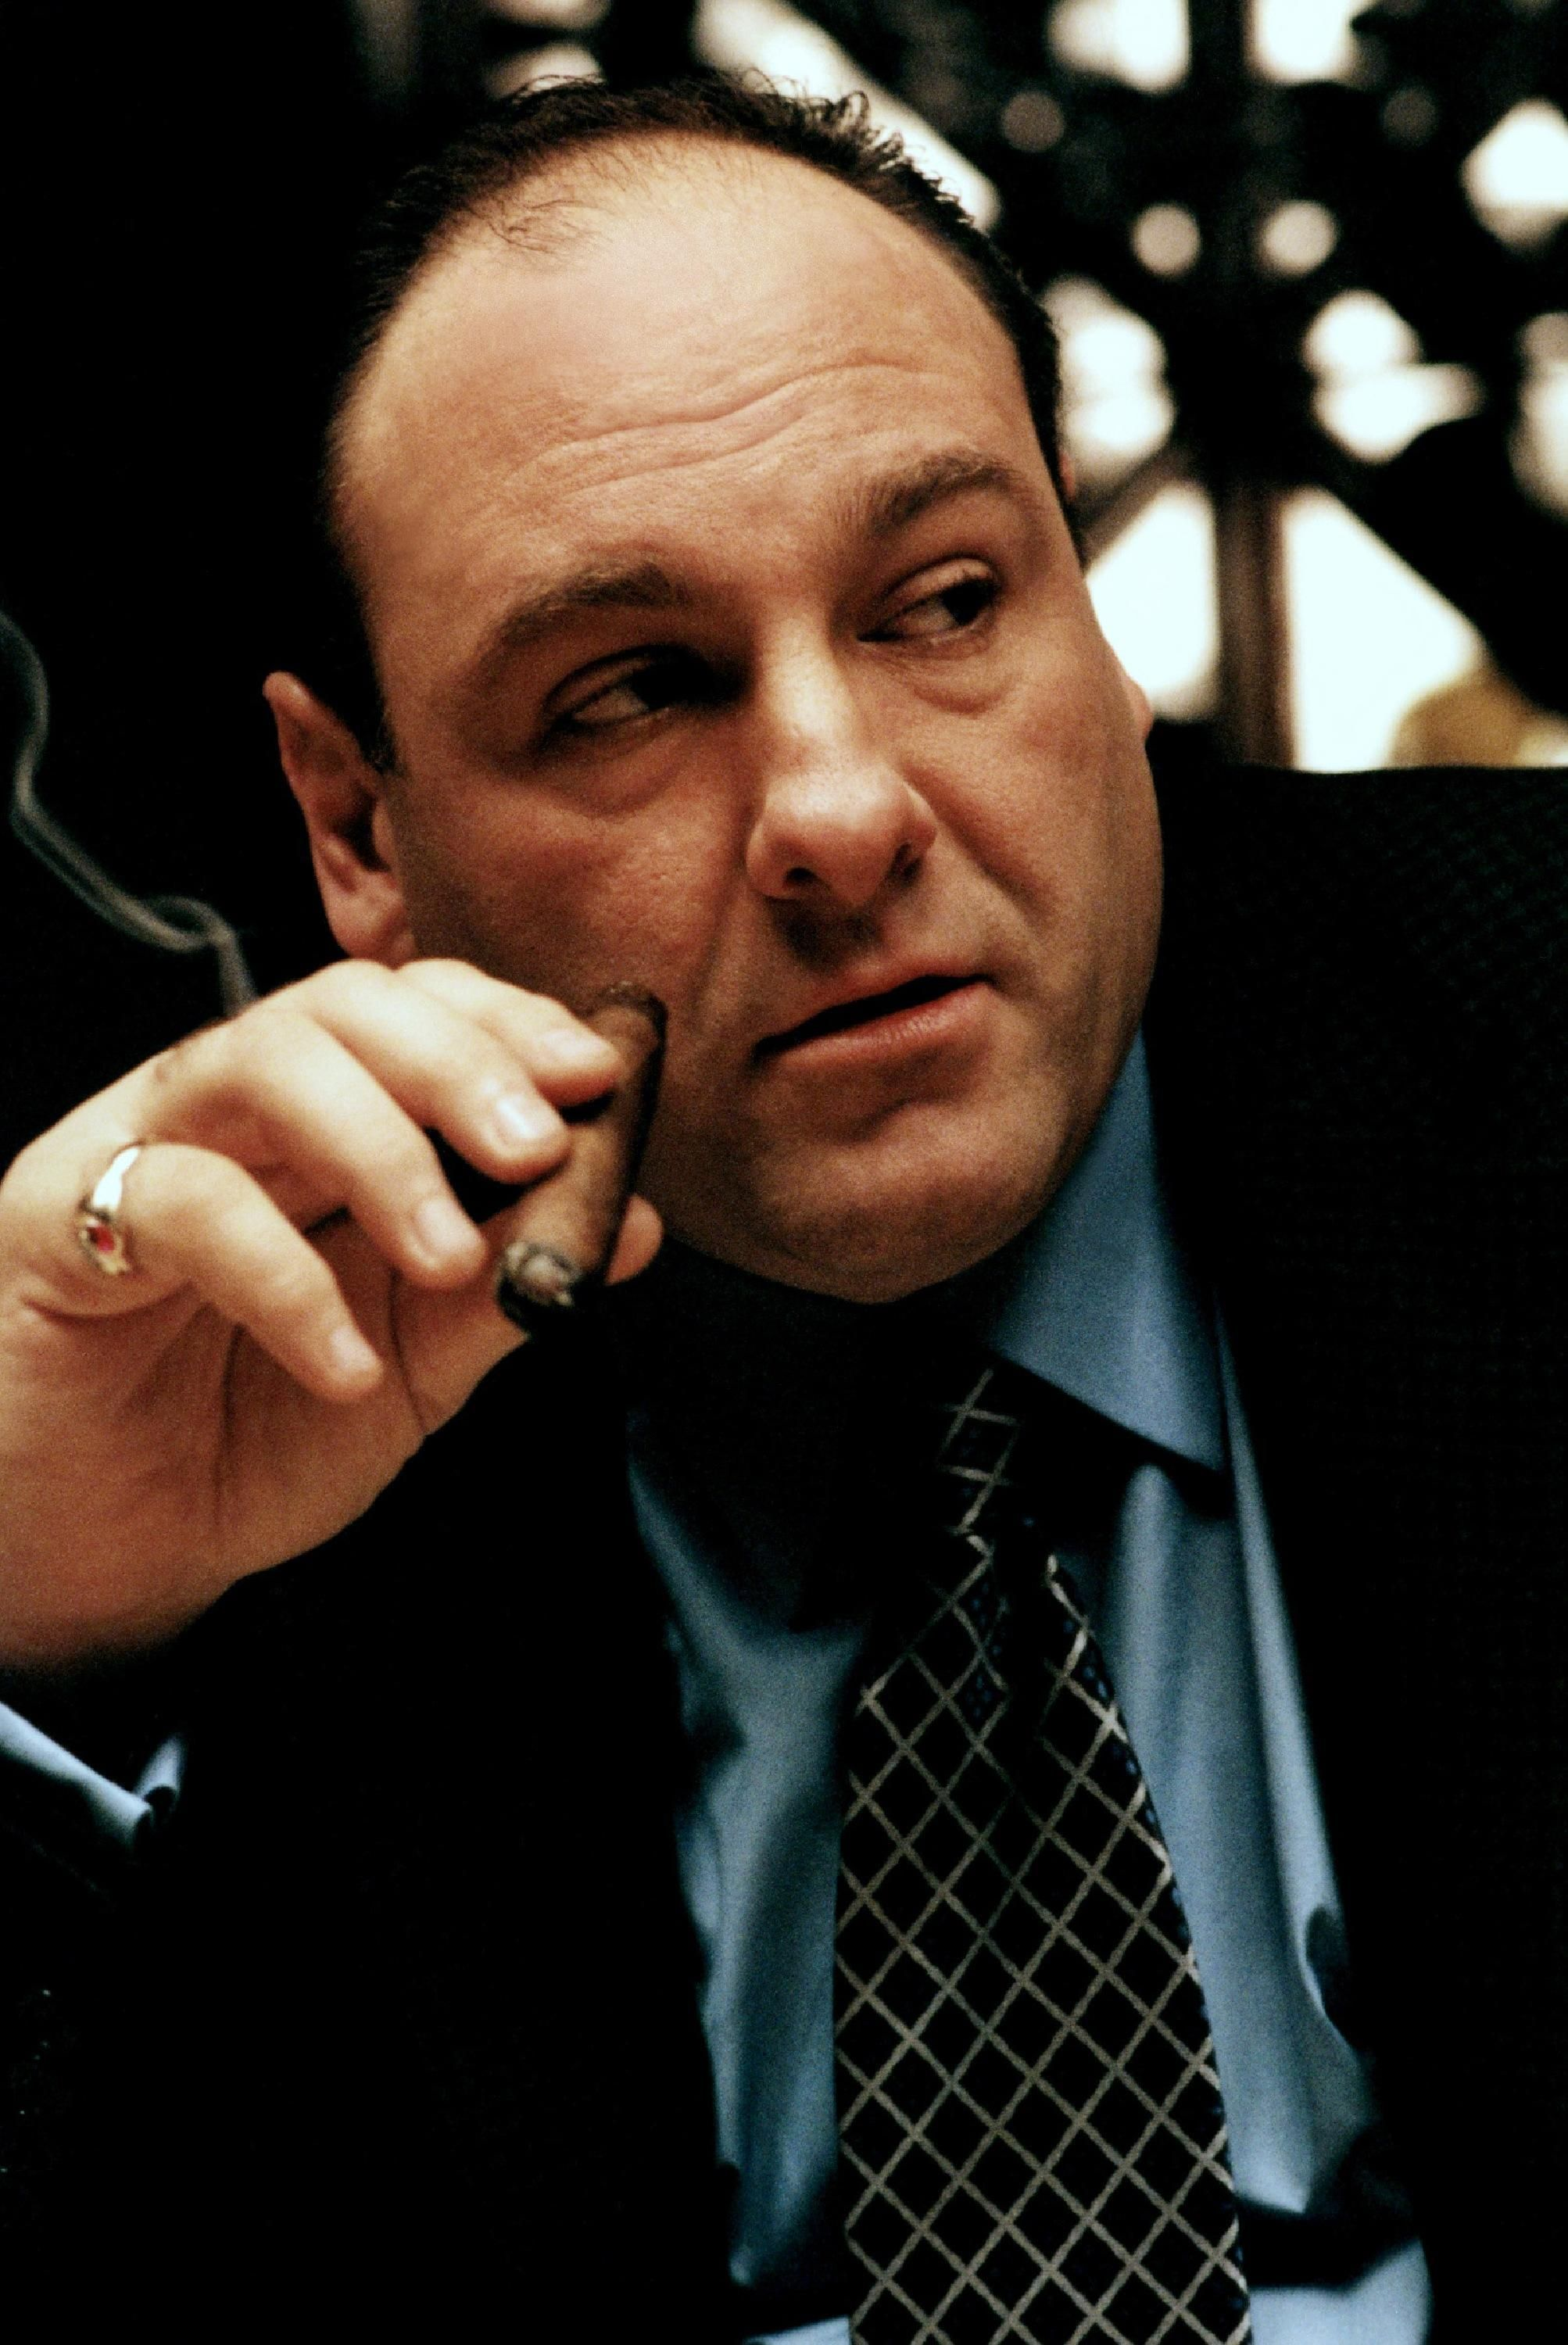 james gandolfini tribute to a friendjames gandolfini tribute to a friend, james gandolfini funeral, james gandolfini young, james gandolfini 2013, james gandolfini son, james gandolfini 2016, james gandolfini art, james gandolfini imdb, james gandolfini inside the actors studio, james gandolfini wife, james gandolfini died, james gandolfini wiki, james gandolfini gif, james gandolfini instagram, james gandolfini twitter, james gandolfini true romance, james gandolfini death, james gandolfini as tony soprano, james gandolfini family guy, james gandolfini emmy